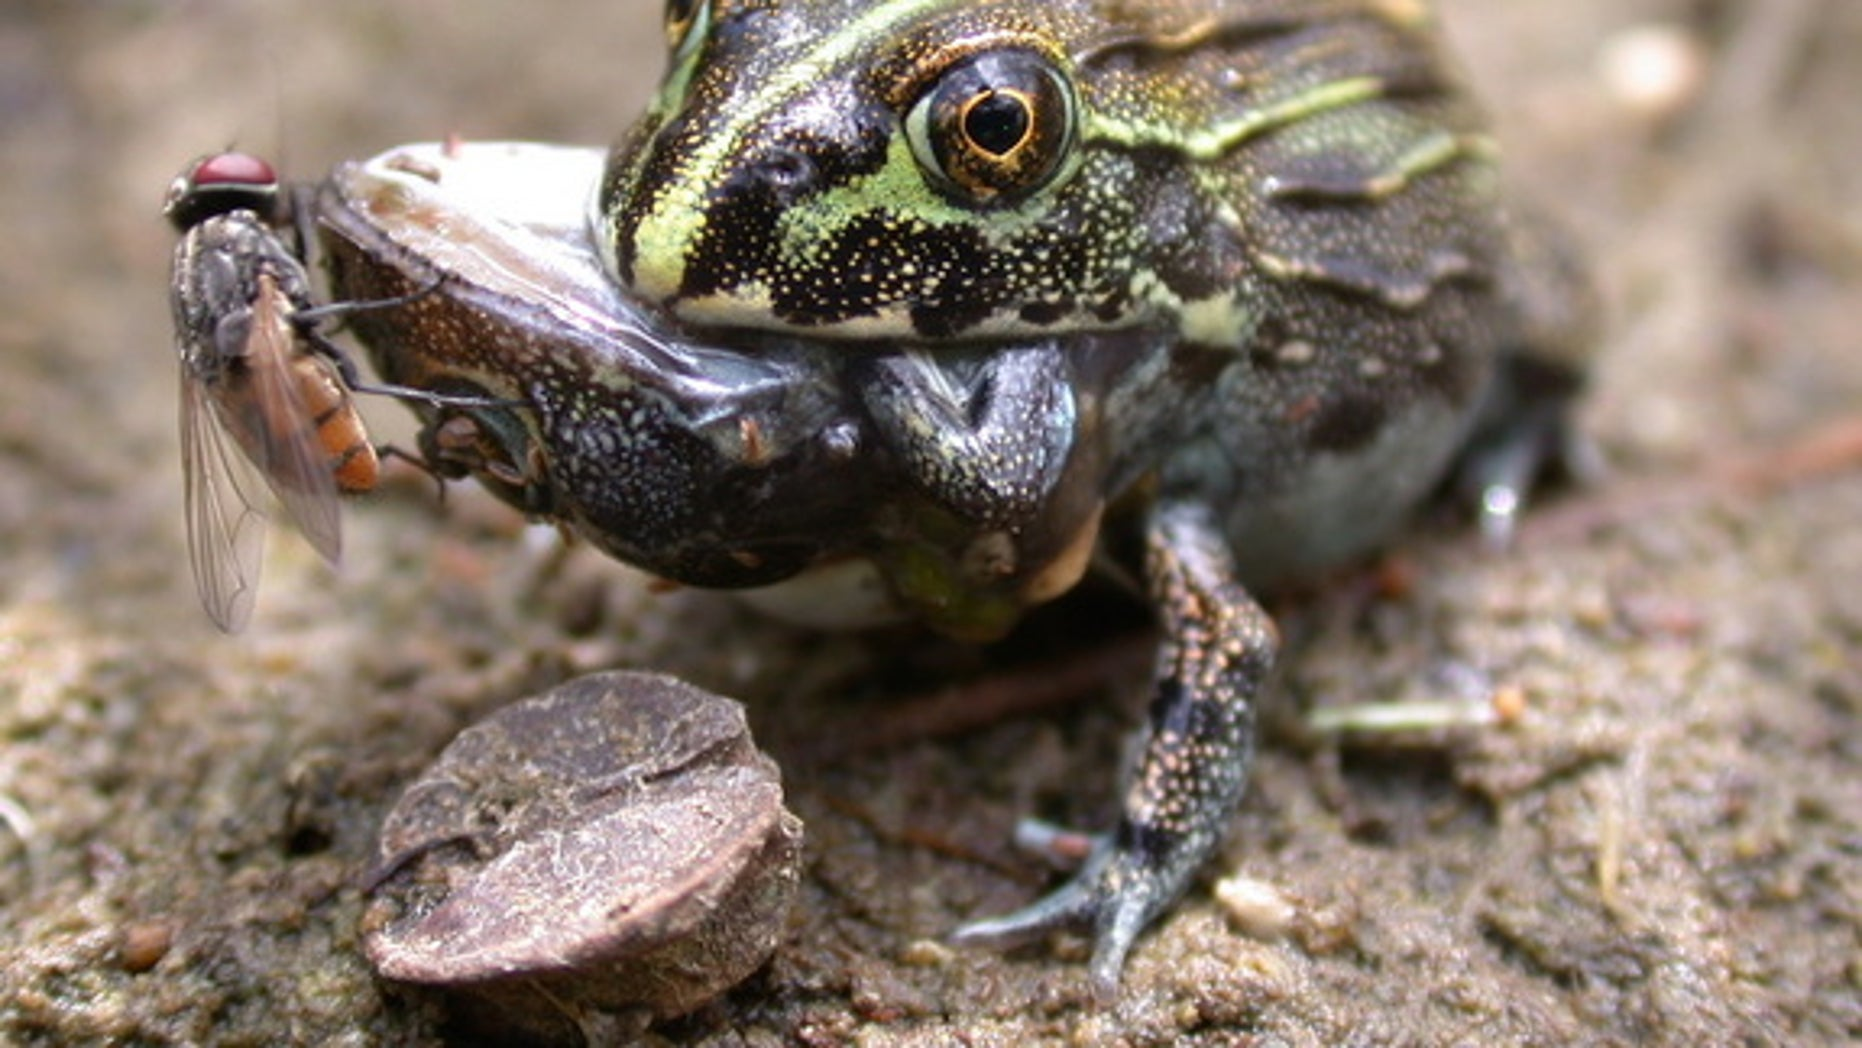 A large frog snacks on a smaller frog.